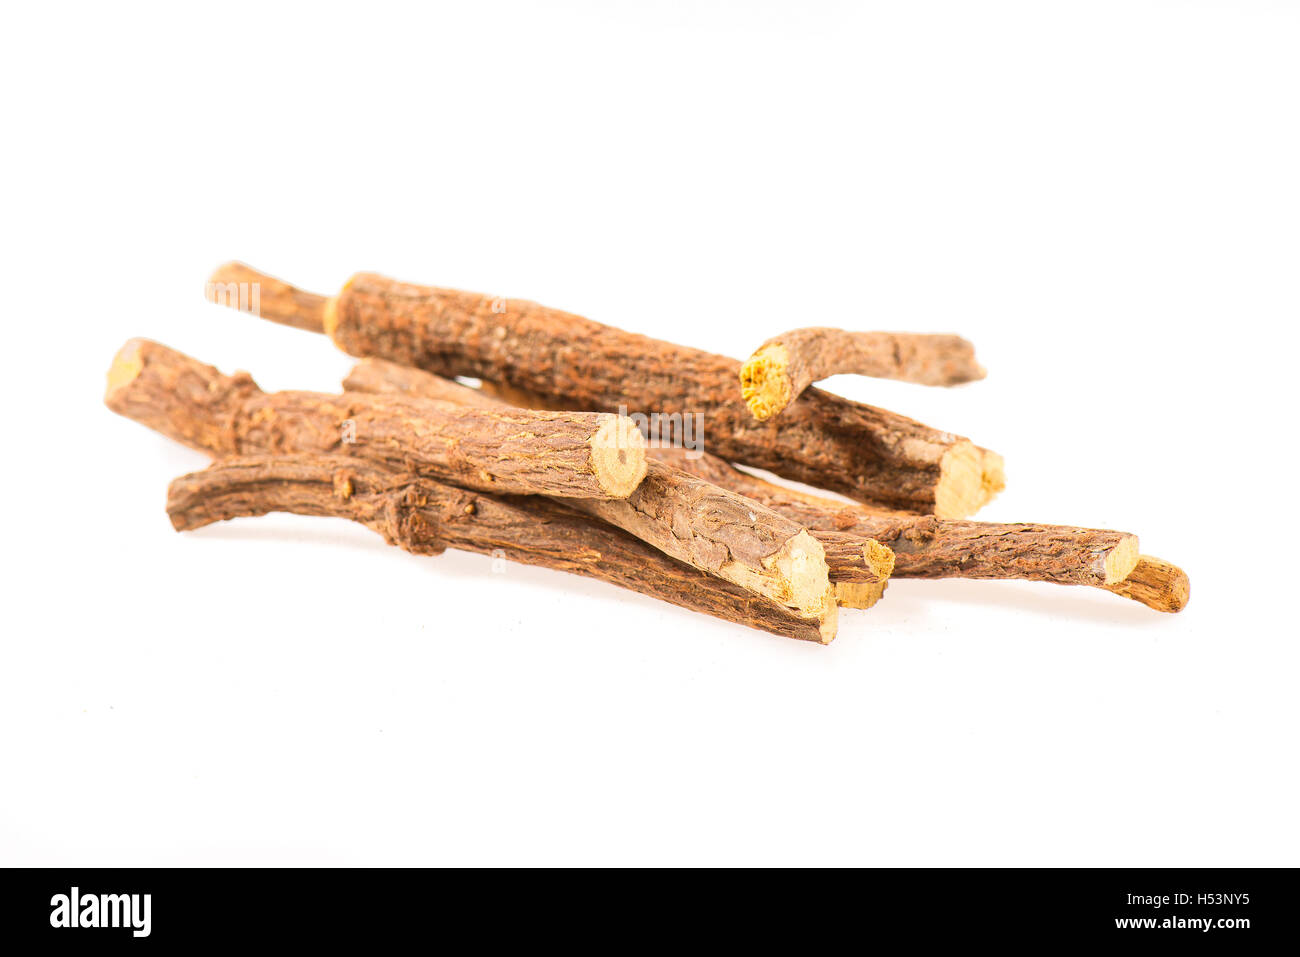 Licorice sticks isolated on white background - Stock Image